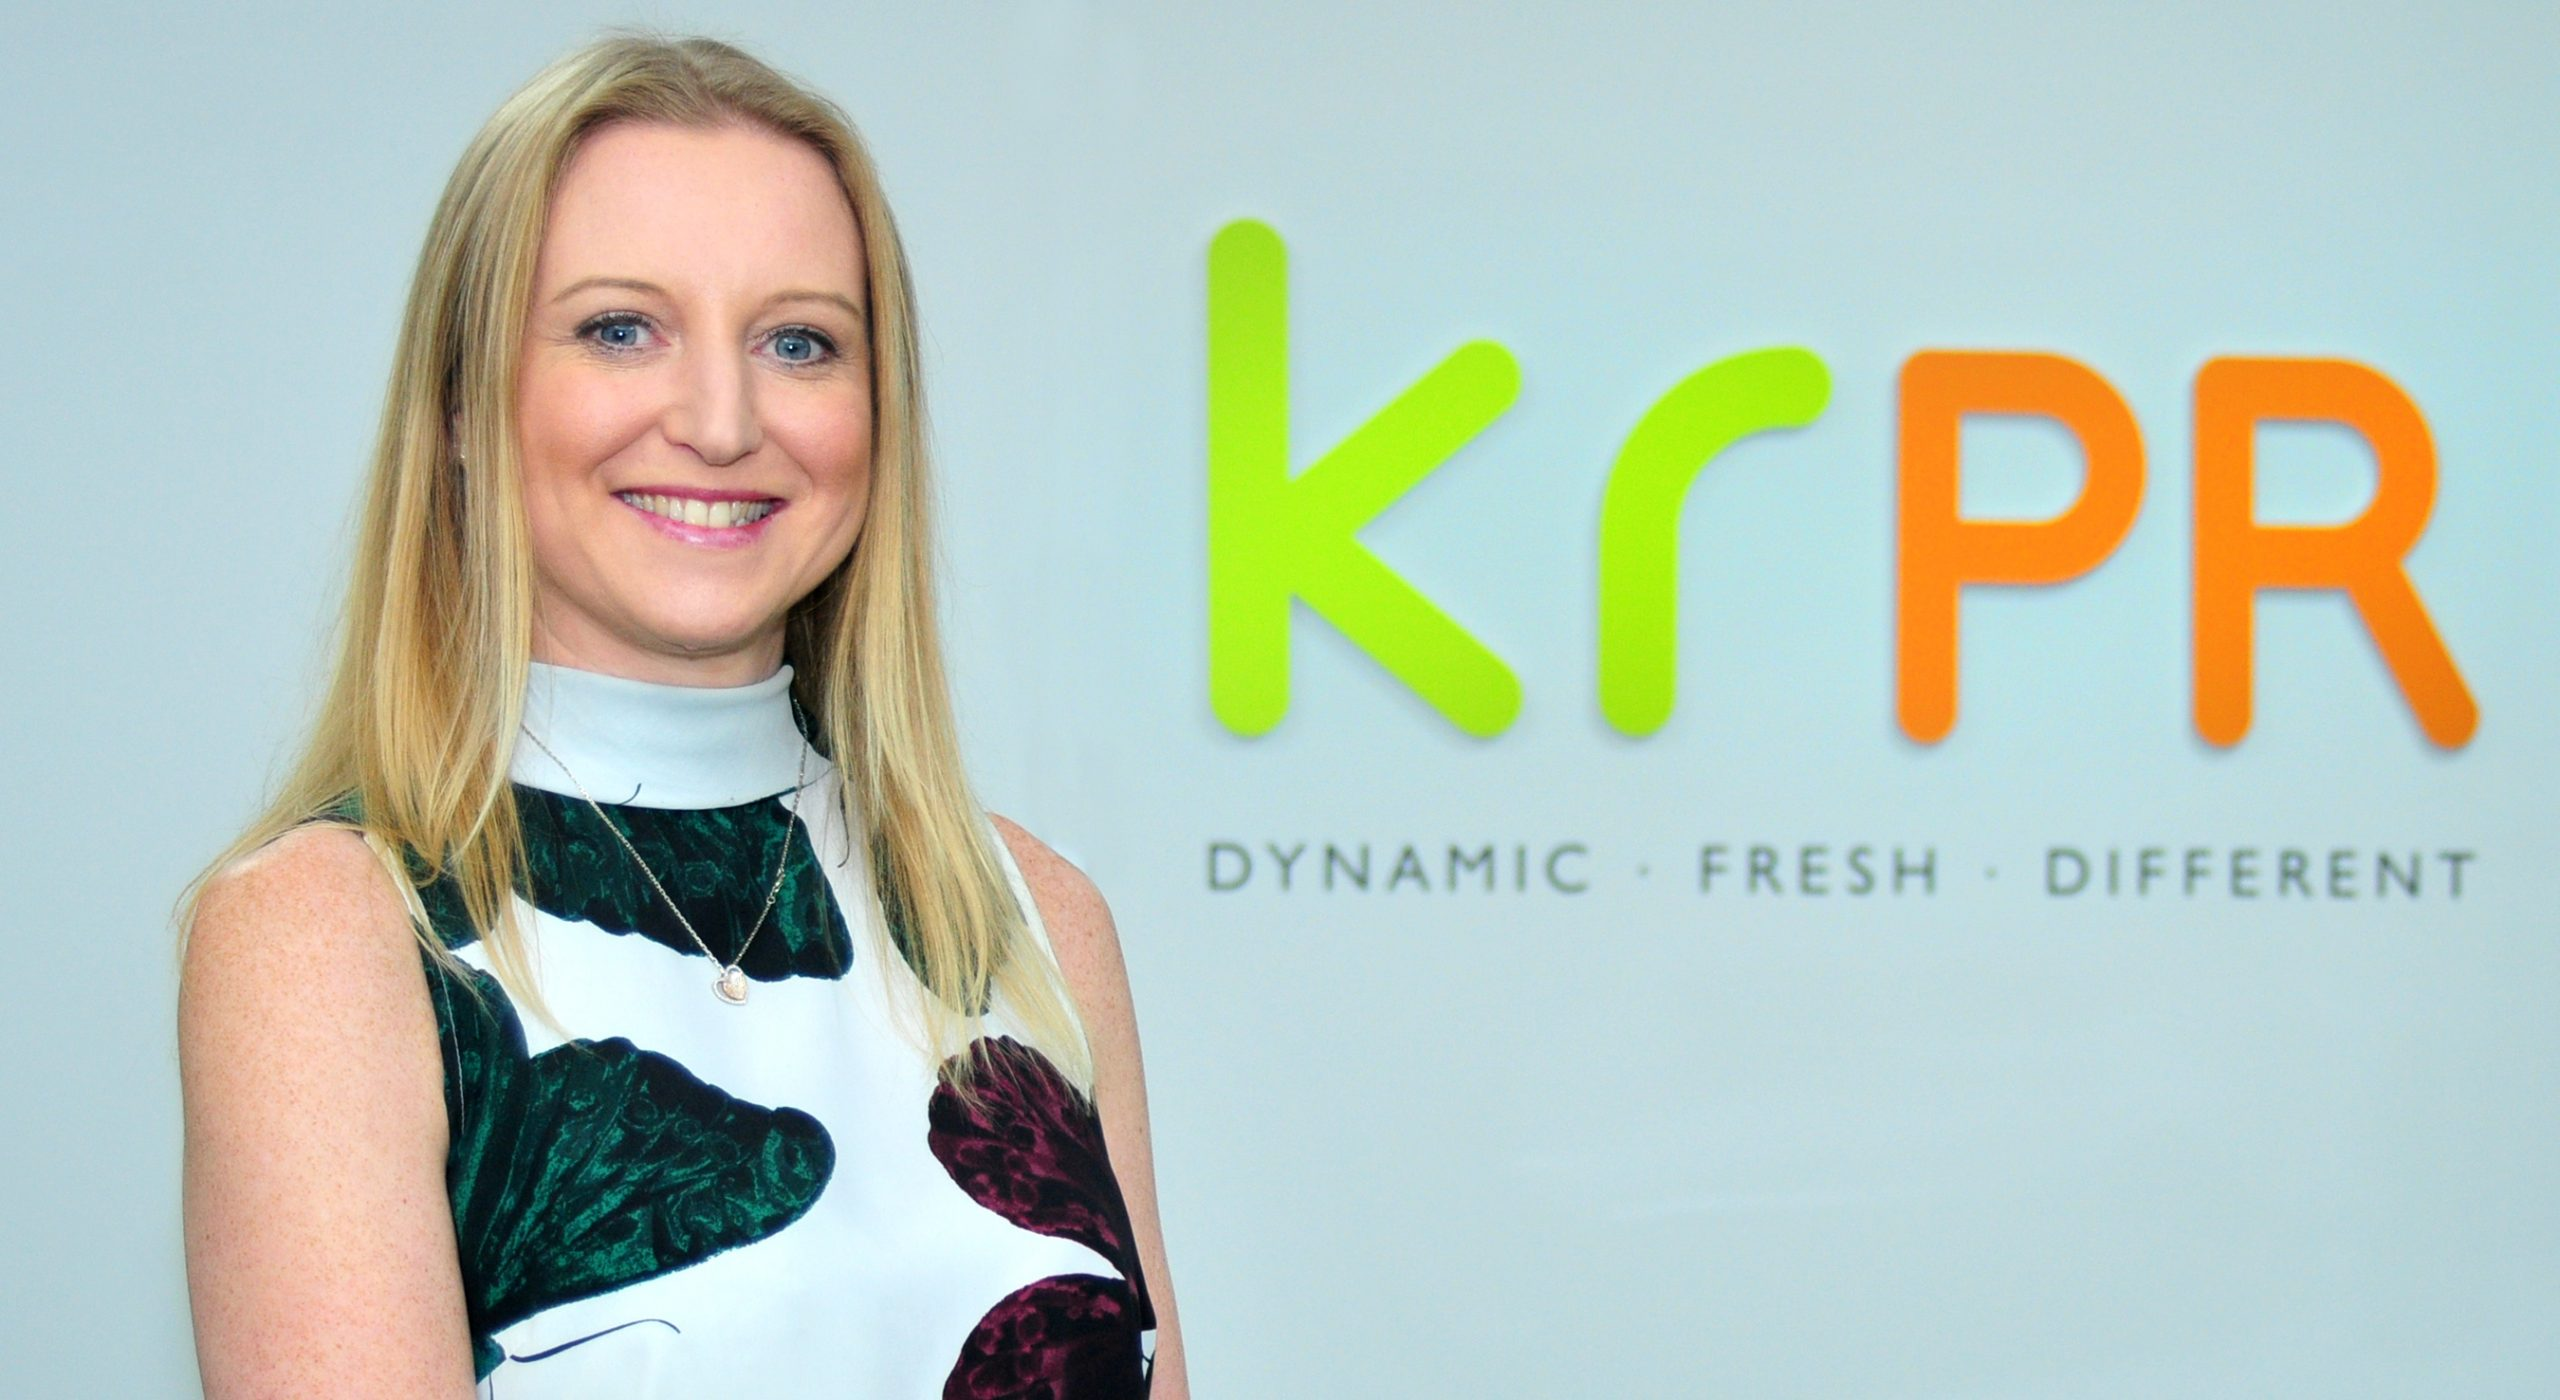 KRPR Gets Double Award Recognition In The PRmoment Shortlist